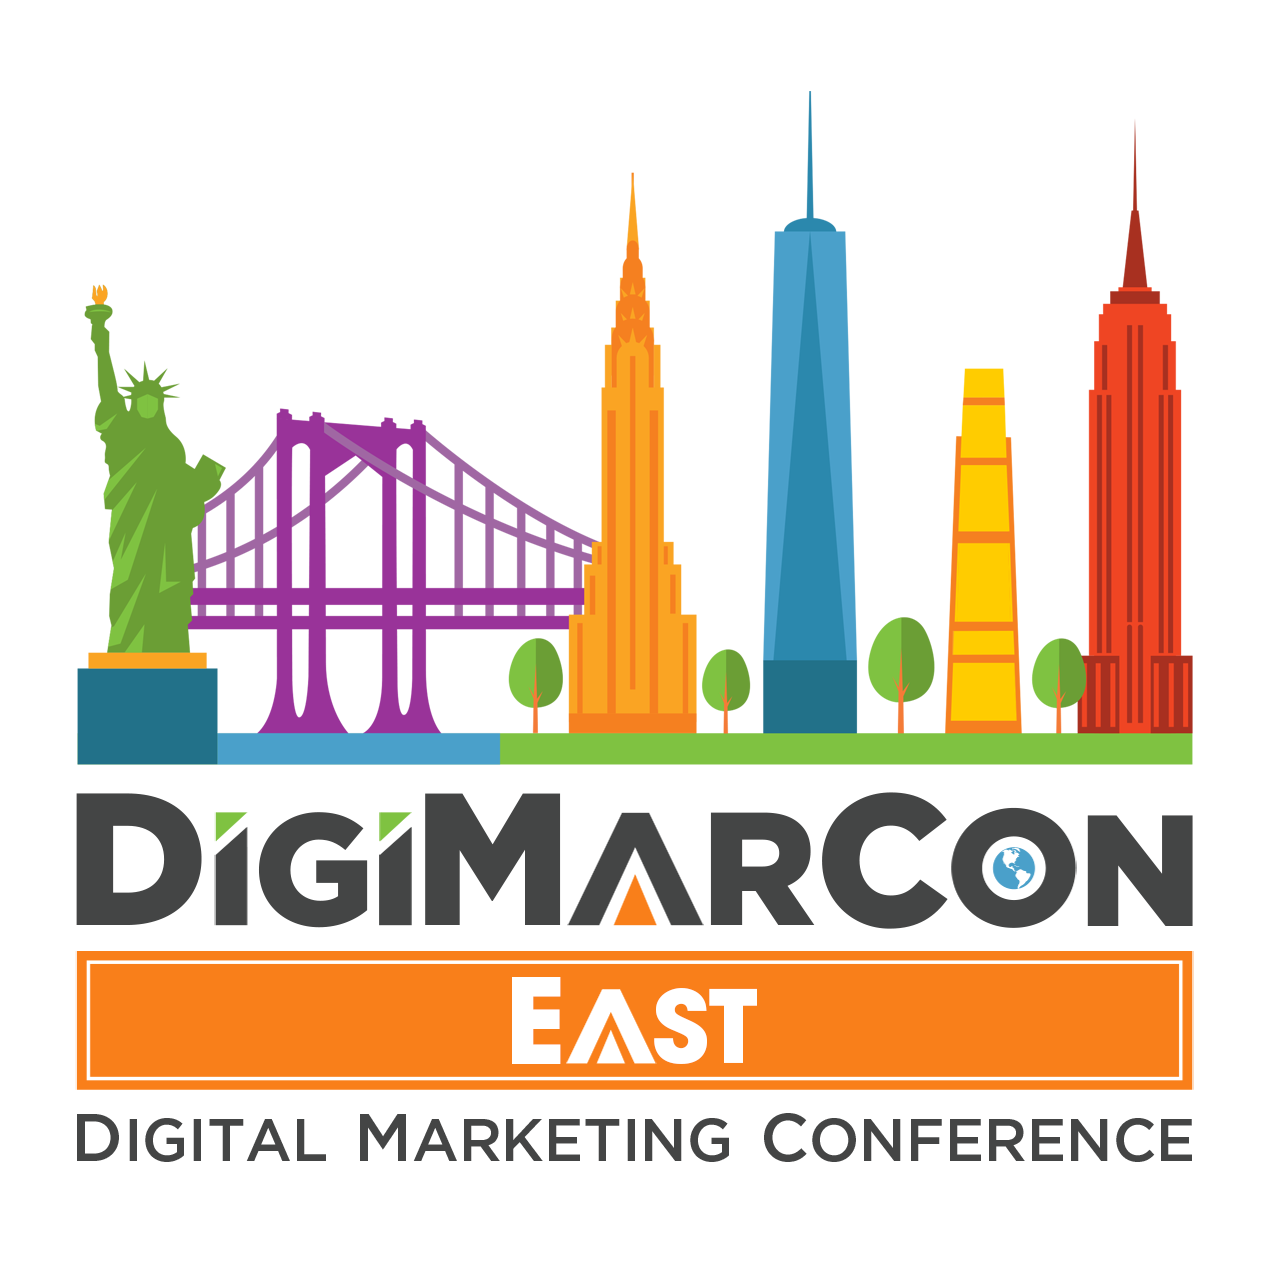 DigiMarCon Canada East 2022 - Digital Marketing, Media and Advertising Conference & Exhibition Logo